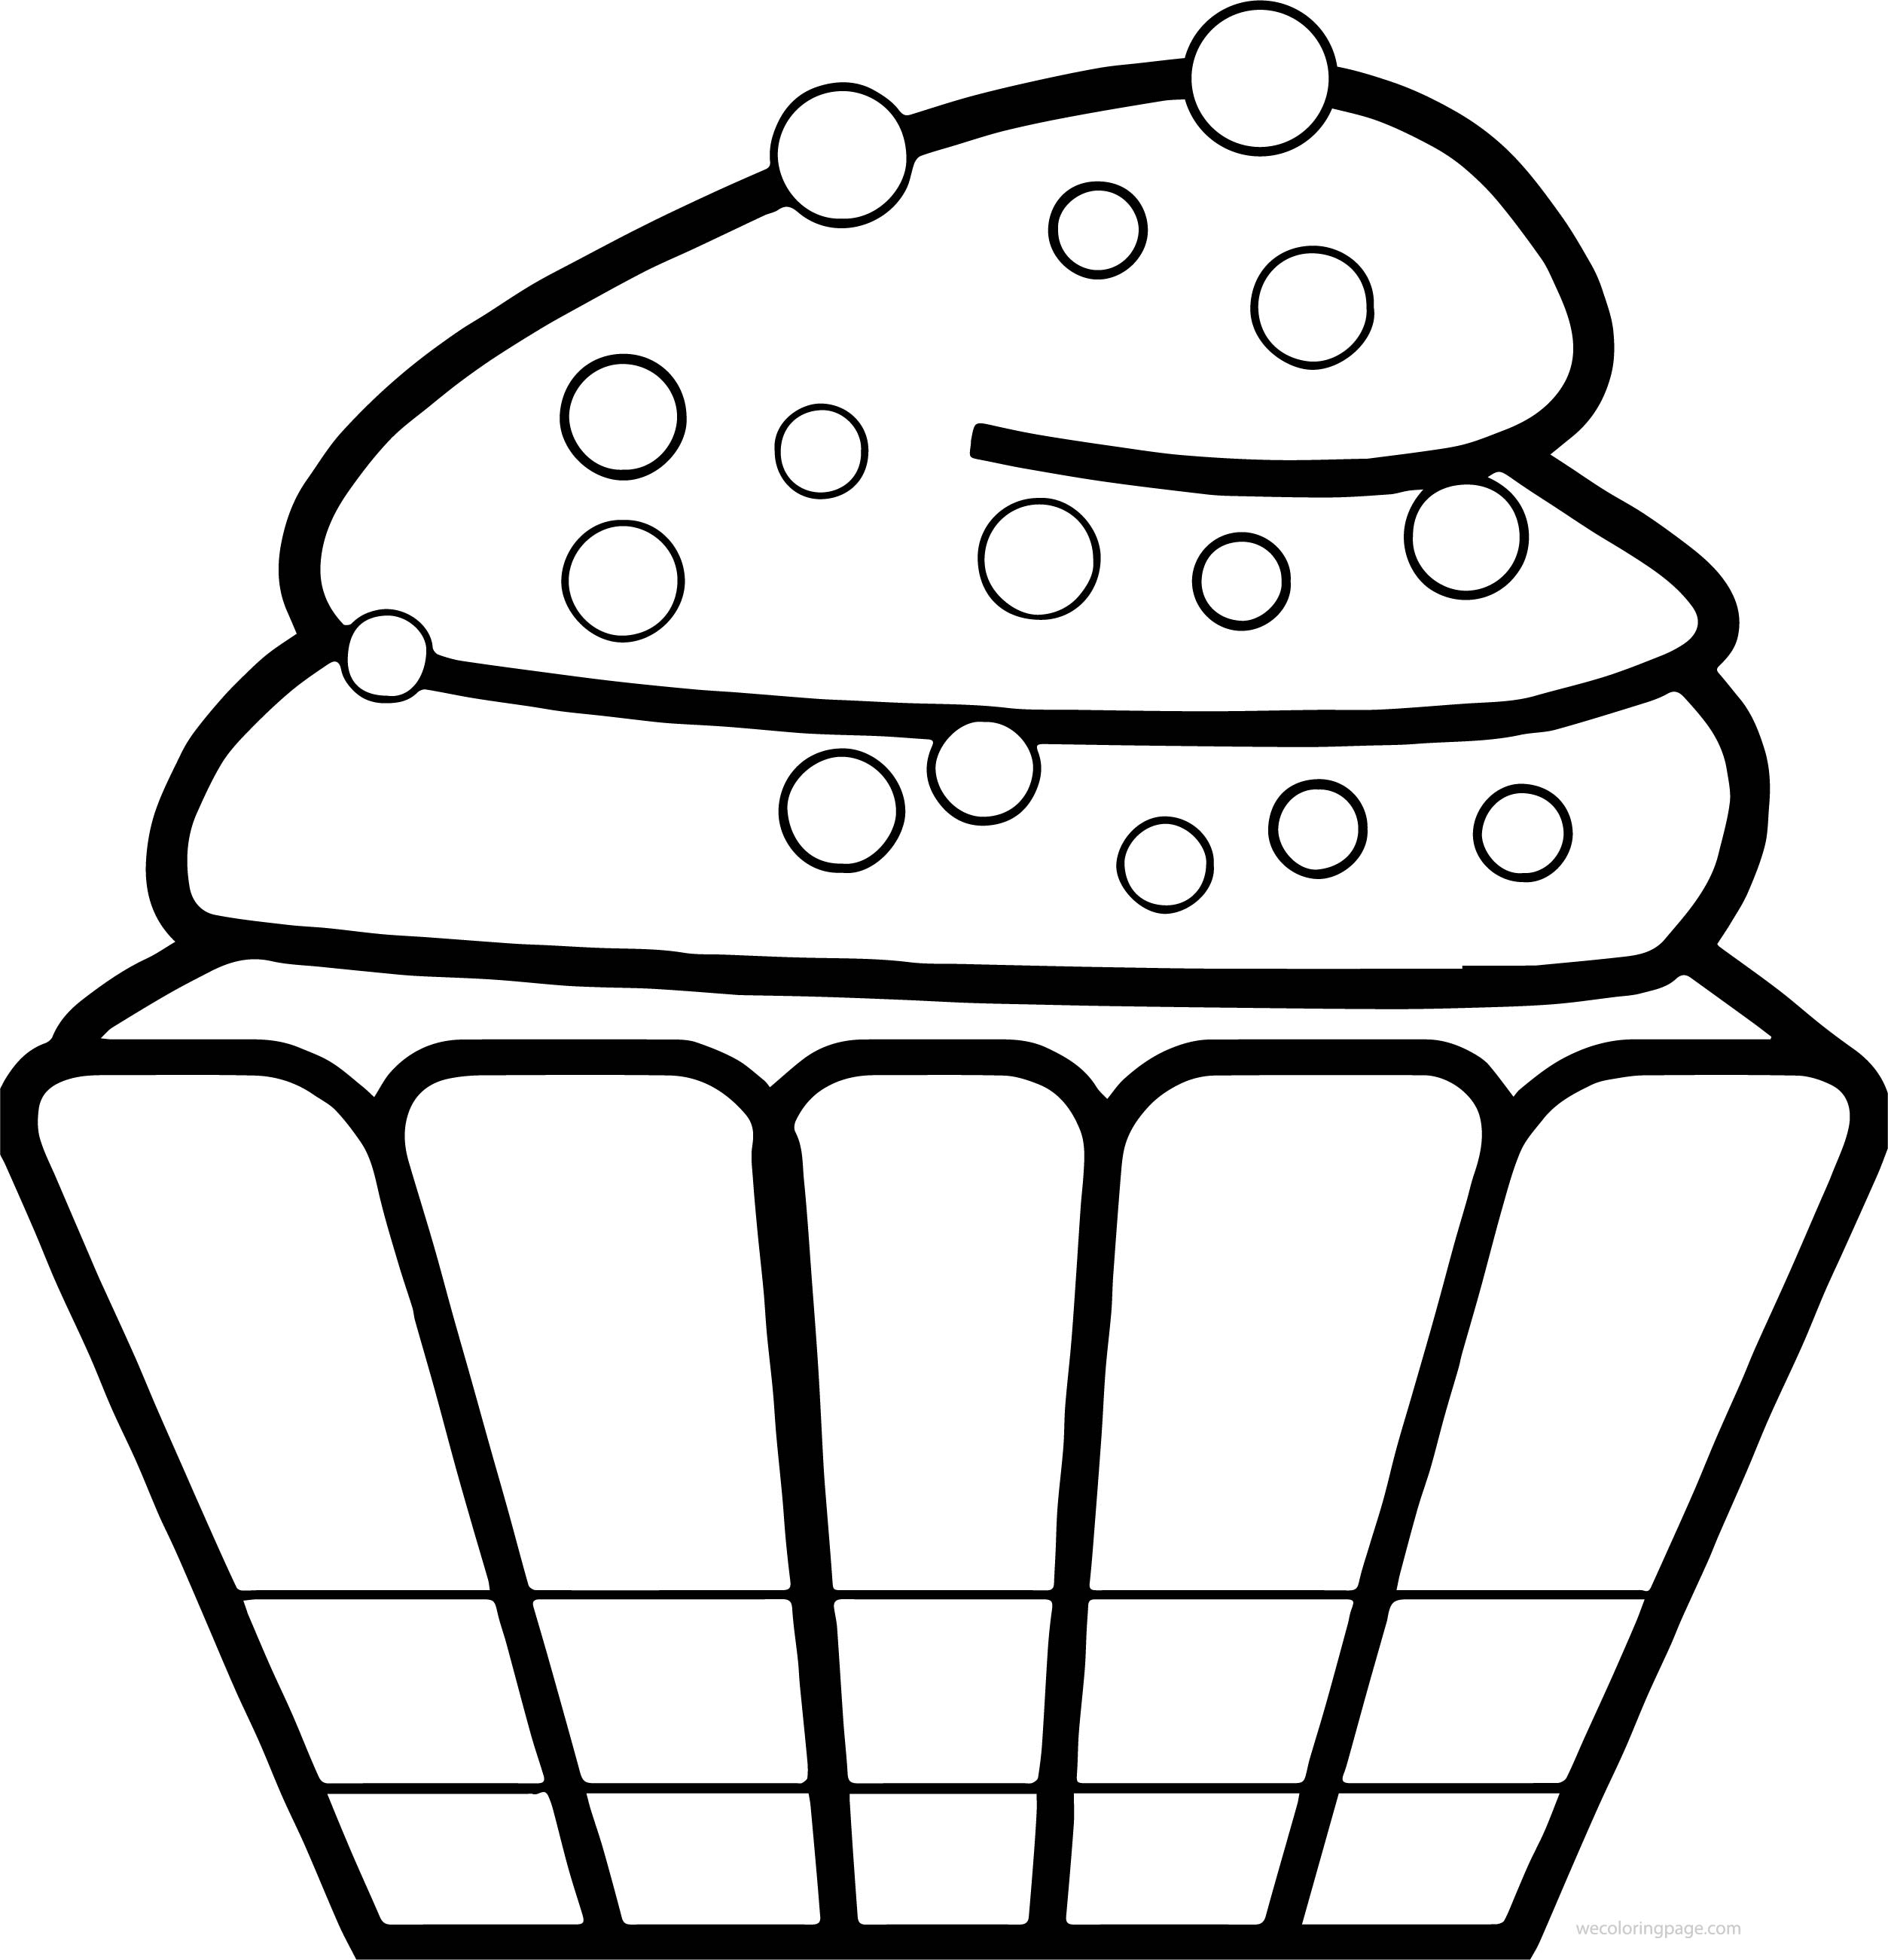 Cupcake Cup Cake Dot Coloring Page